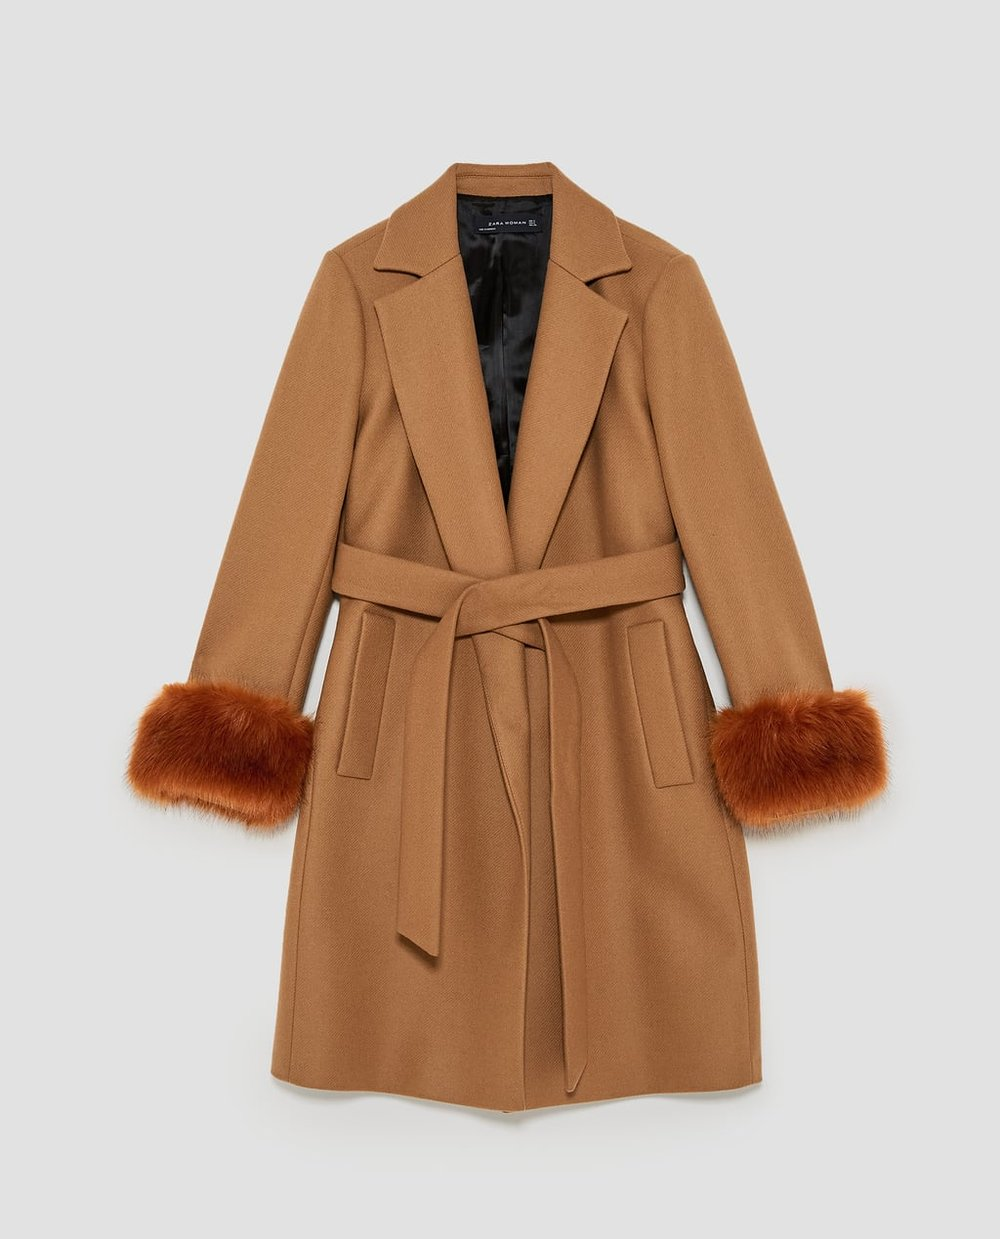 Coat with textured cuffs,£119, ZARA -